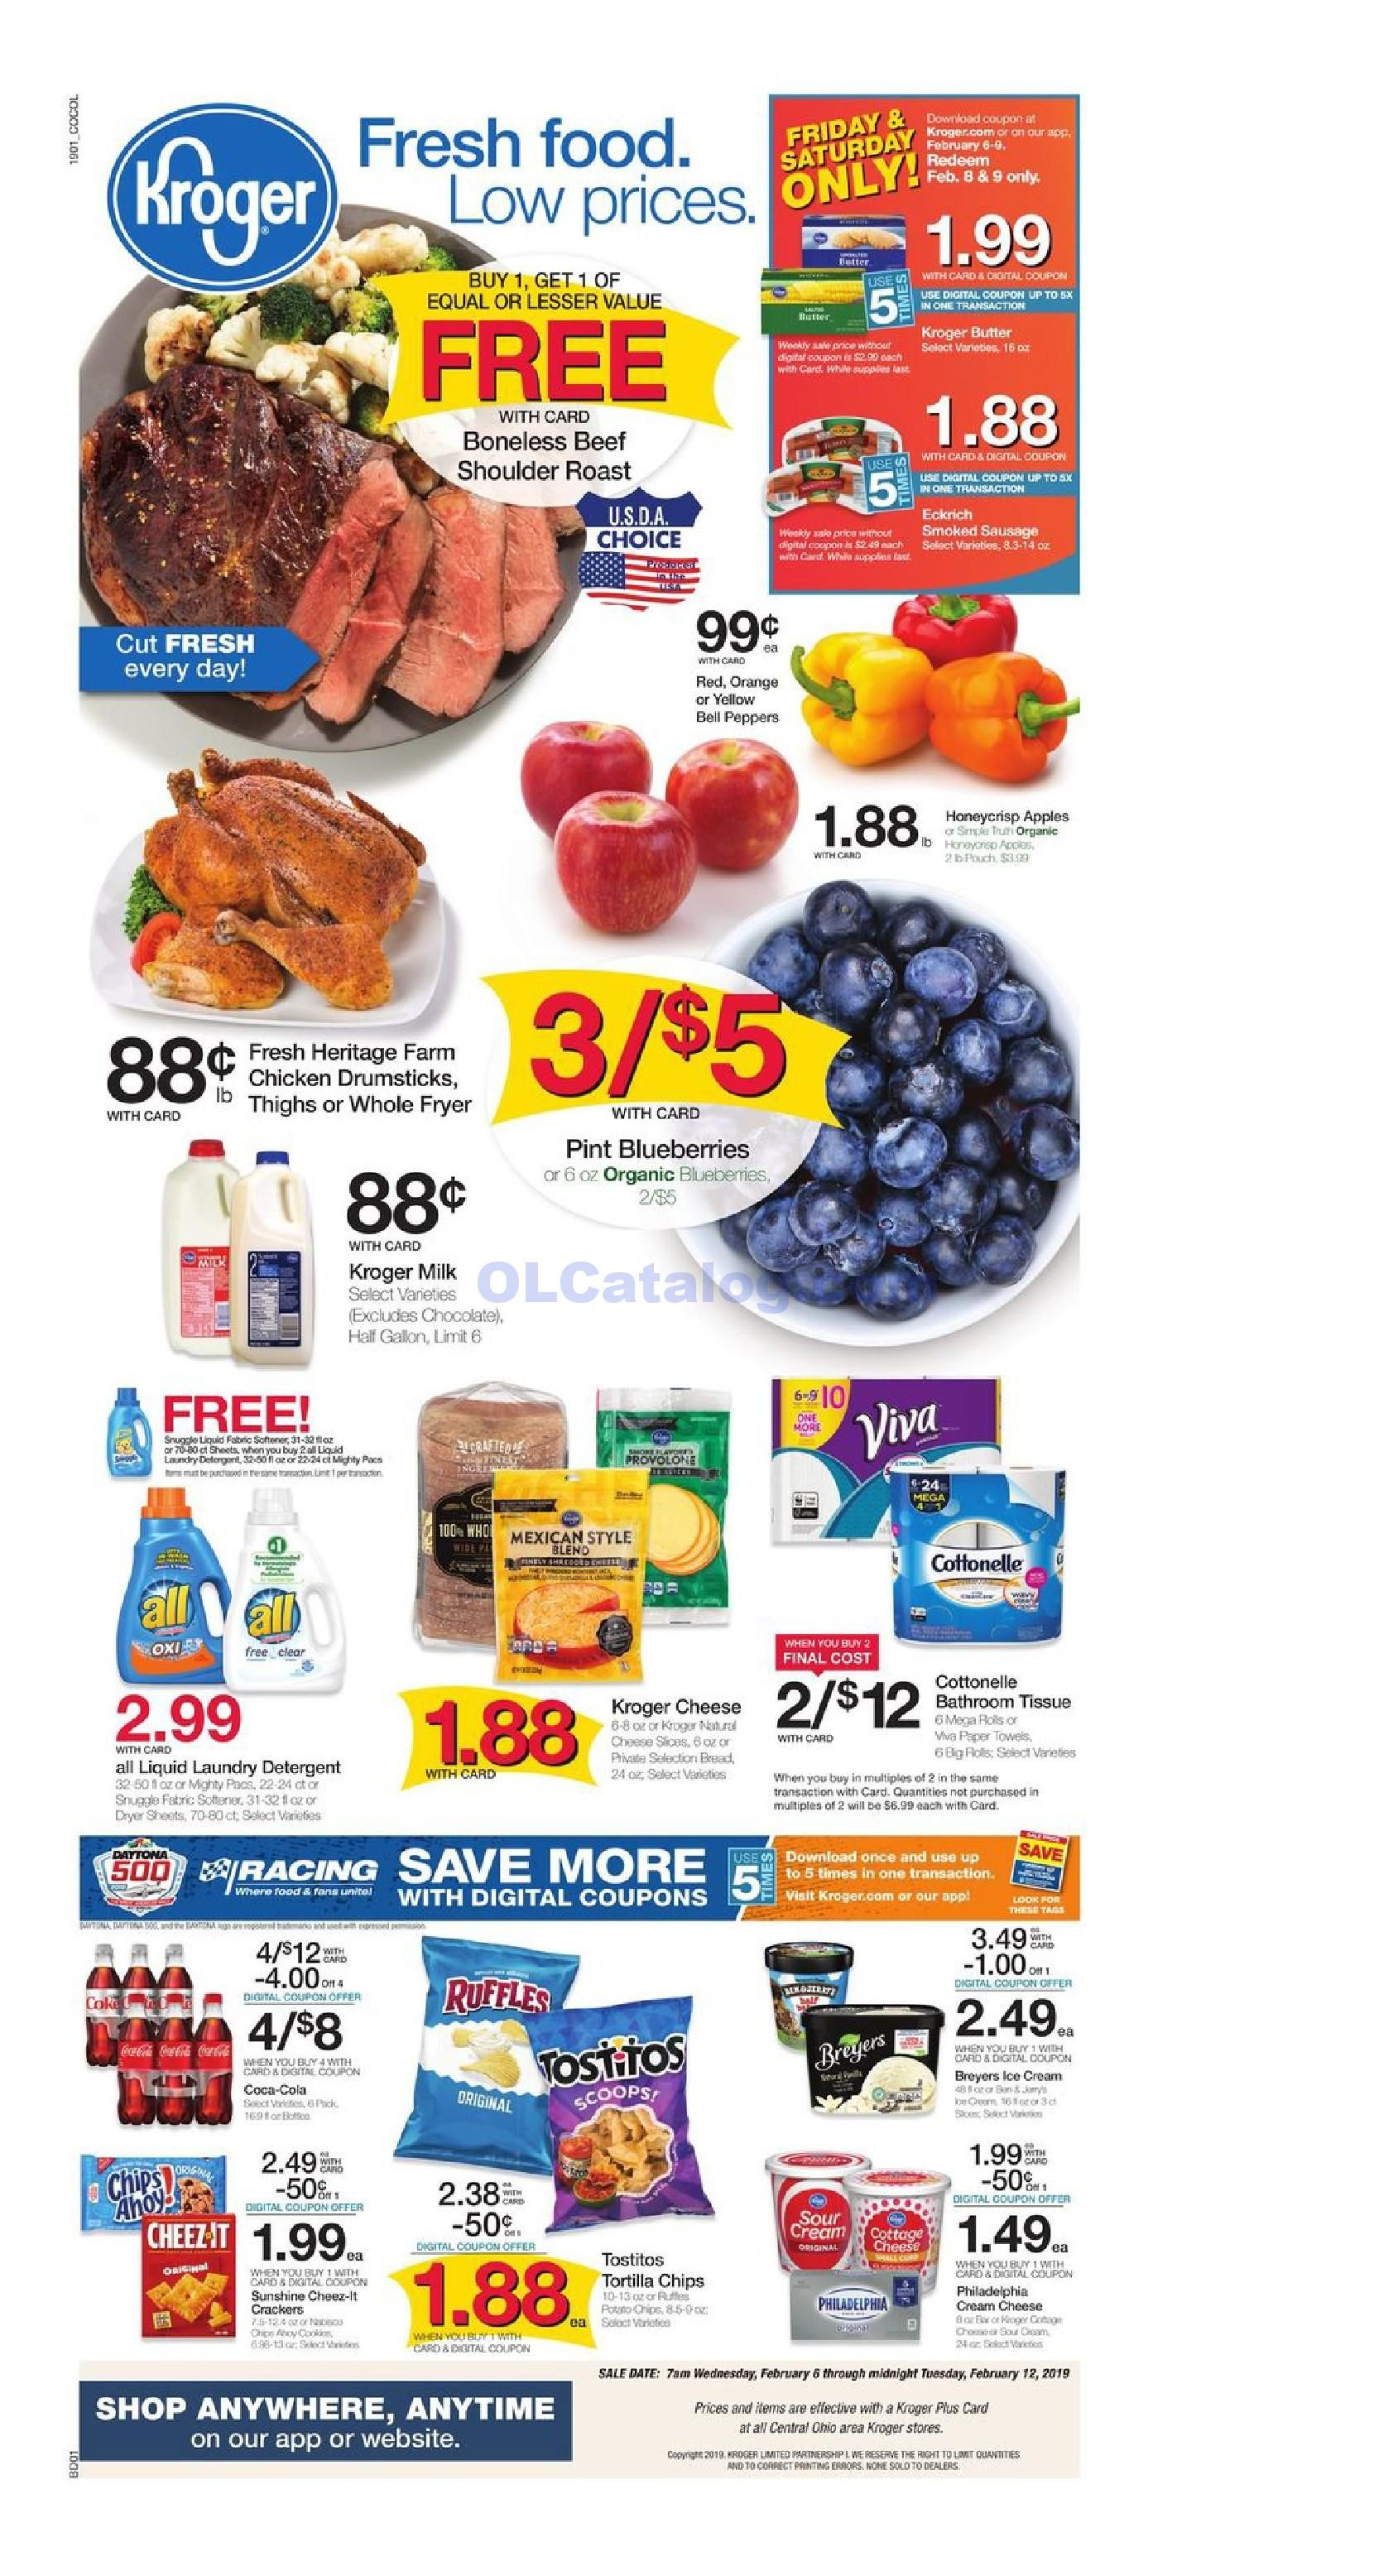 Kroger Weekly Ad February 6 12 2019 Check Latest Kroger Weekly Ad Flyer At Kroger Near Me You Can Find Kroger Digital Coupons Fresh Food Kroger Weekly Ads